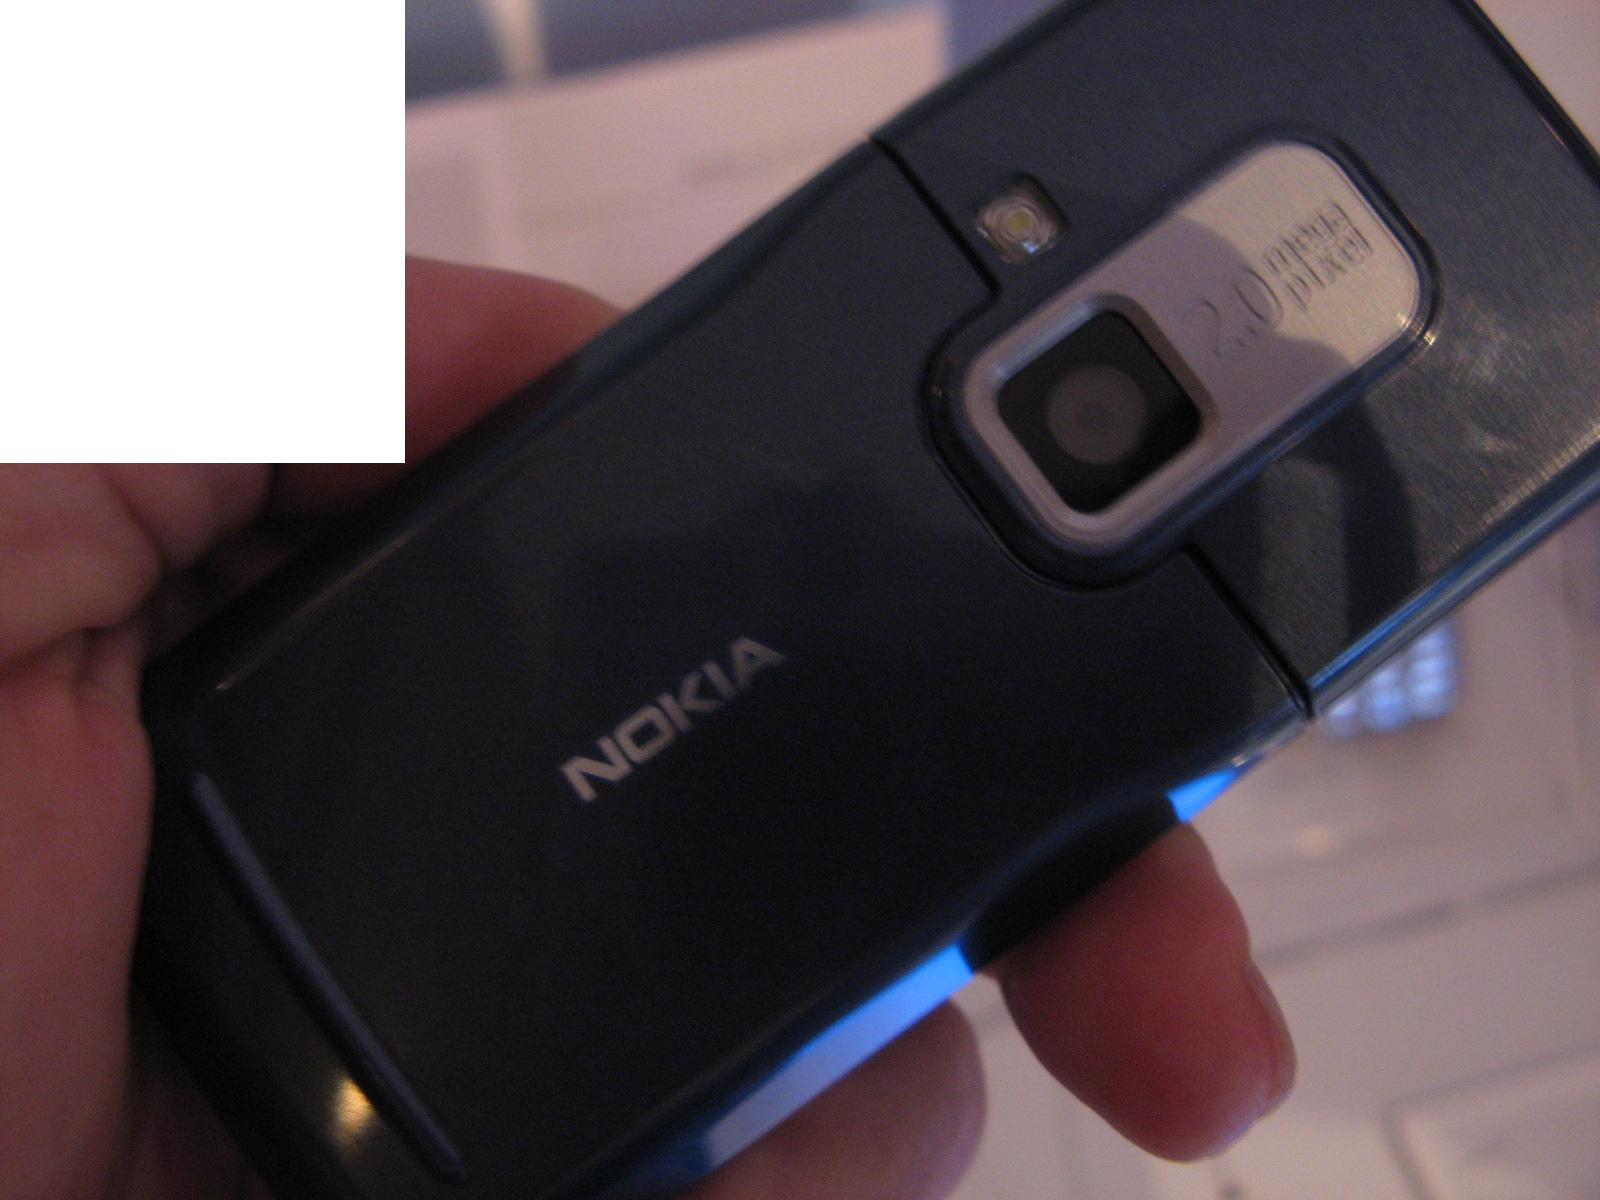 Nokia 5800 XpressMusic Games&Apps